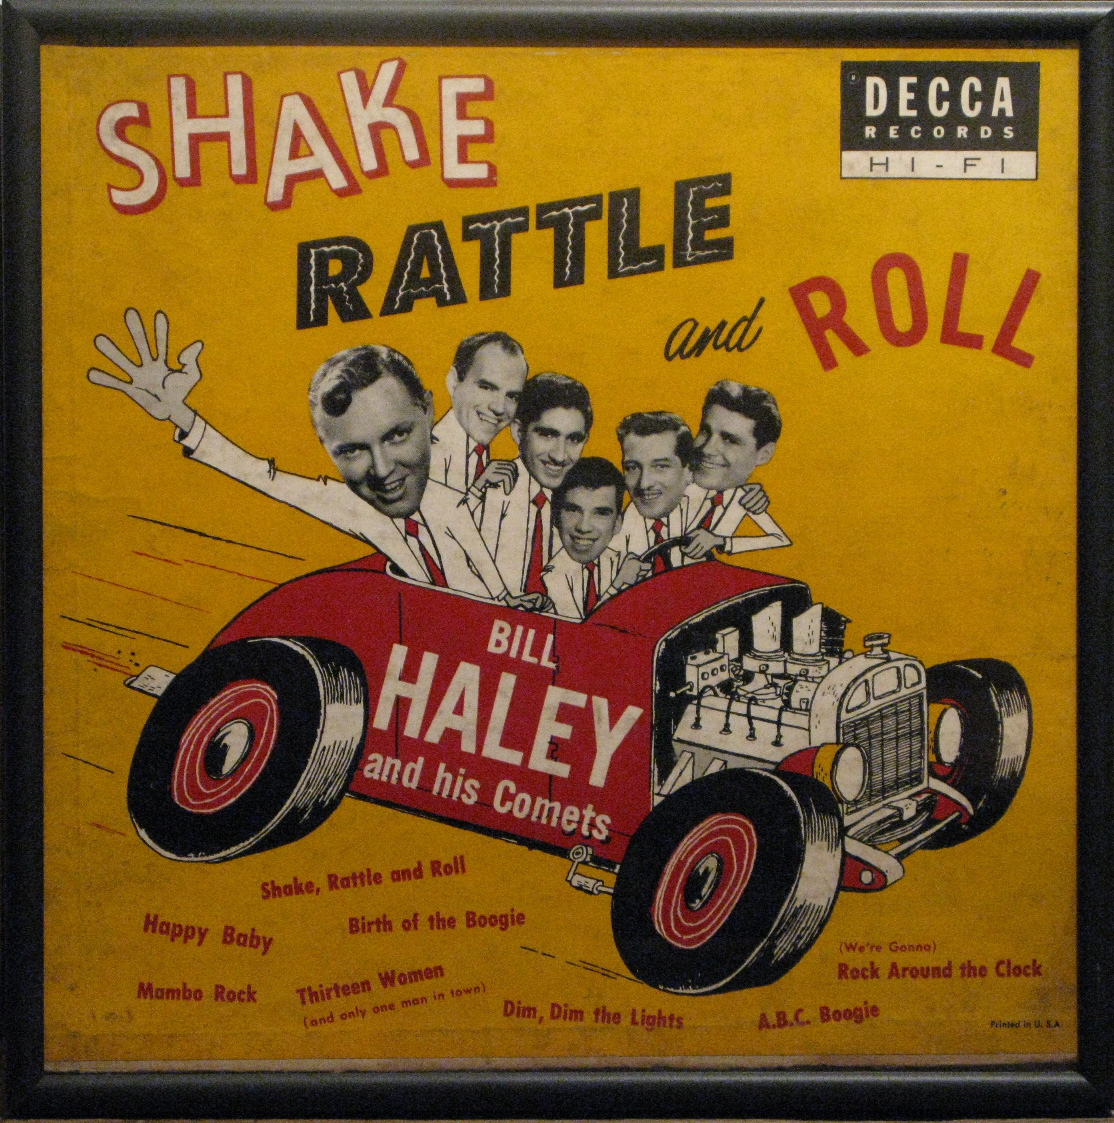 Bill Haley and His Comets - Shake, Rattle and Roll LP on Decca